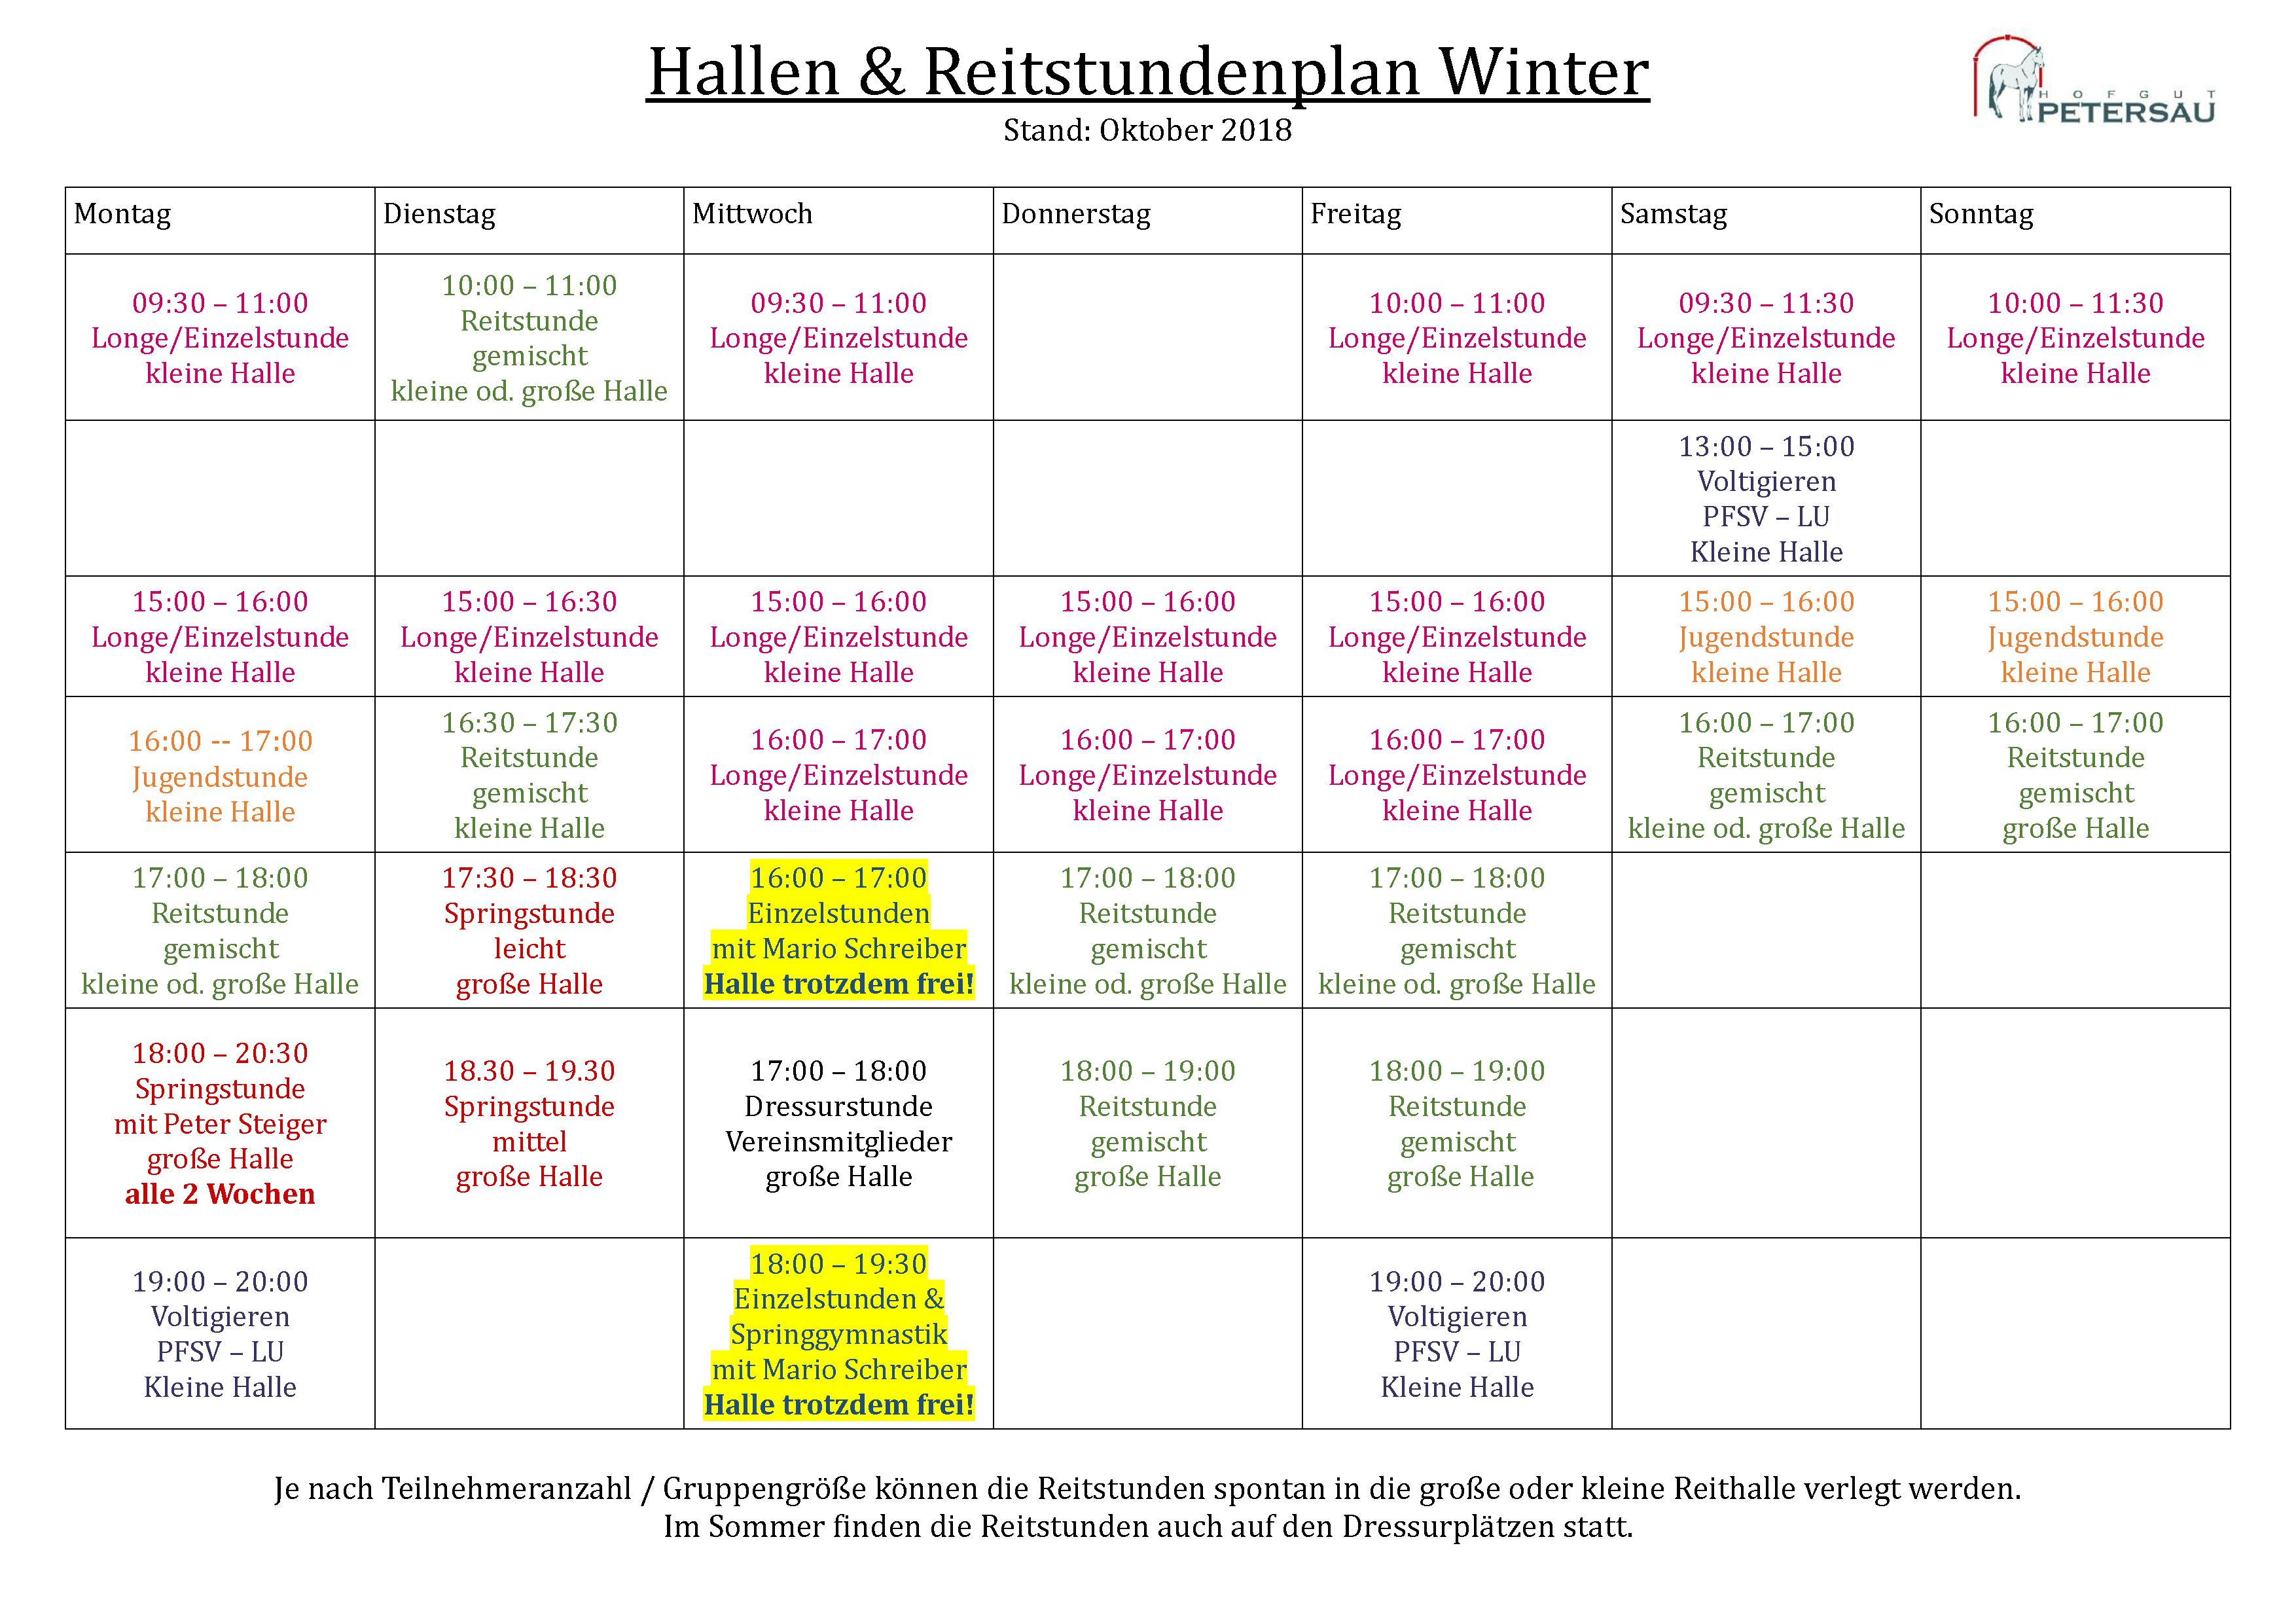 Reitstundenplan Winter 2018